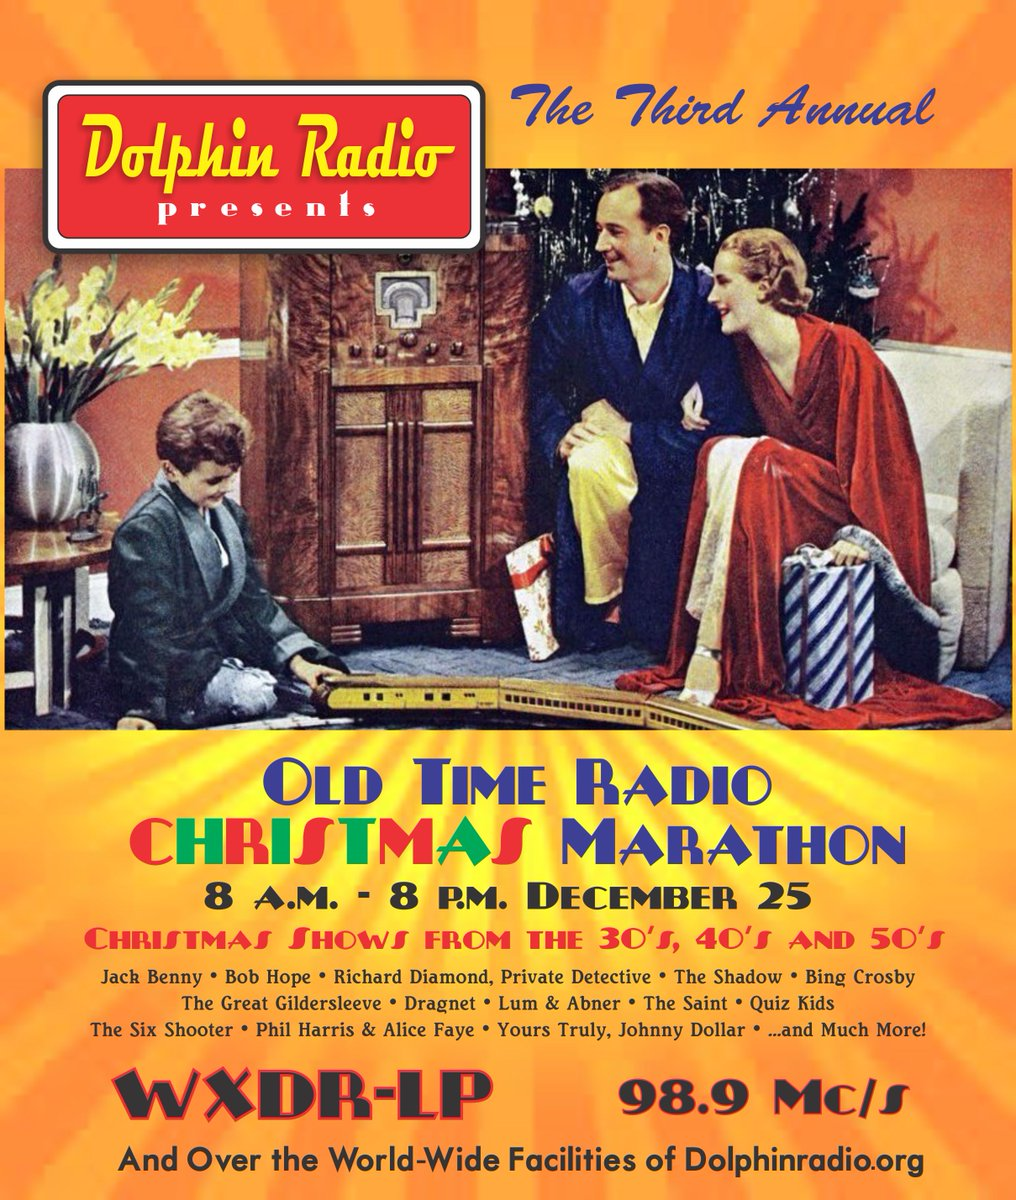 0 replies 1 retweet 1 like - Old Time Radio Christmas